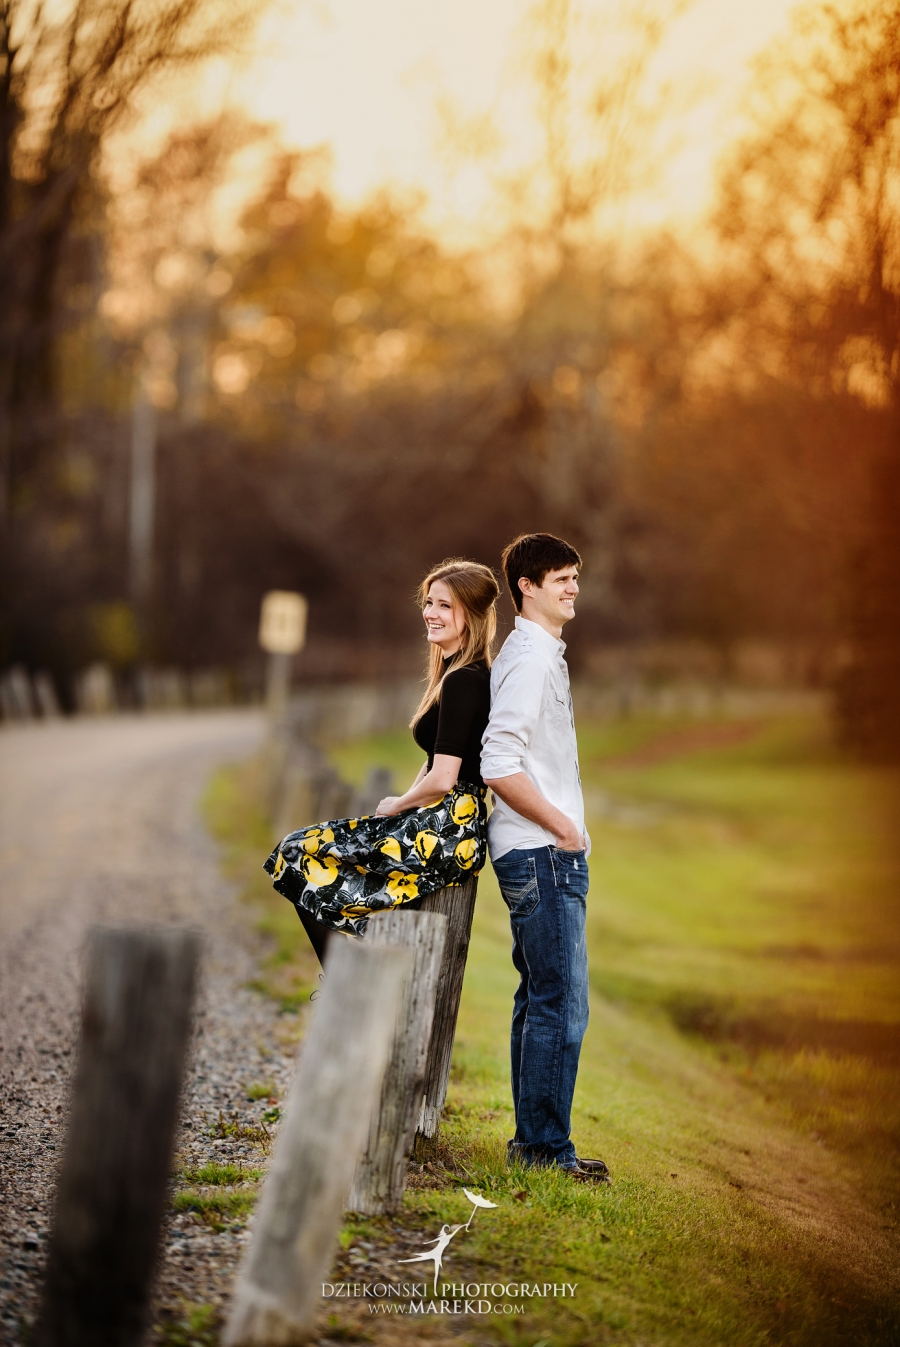 samantha-eric-fall-engagement-session-clarkston-michigan-photographer-metro-detroit-pictures-colors-leaves07